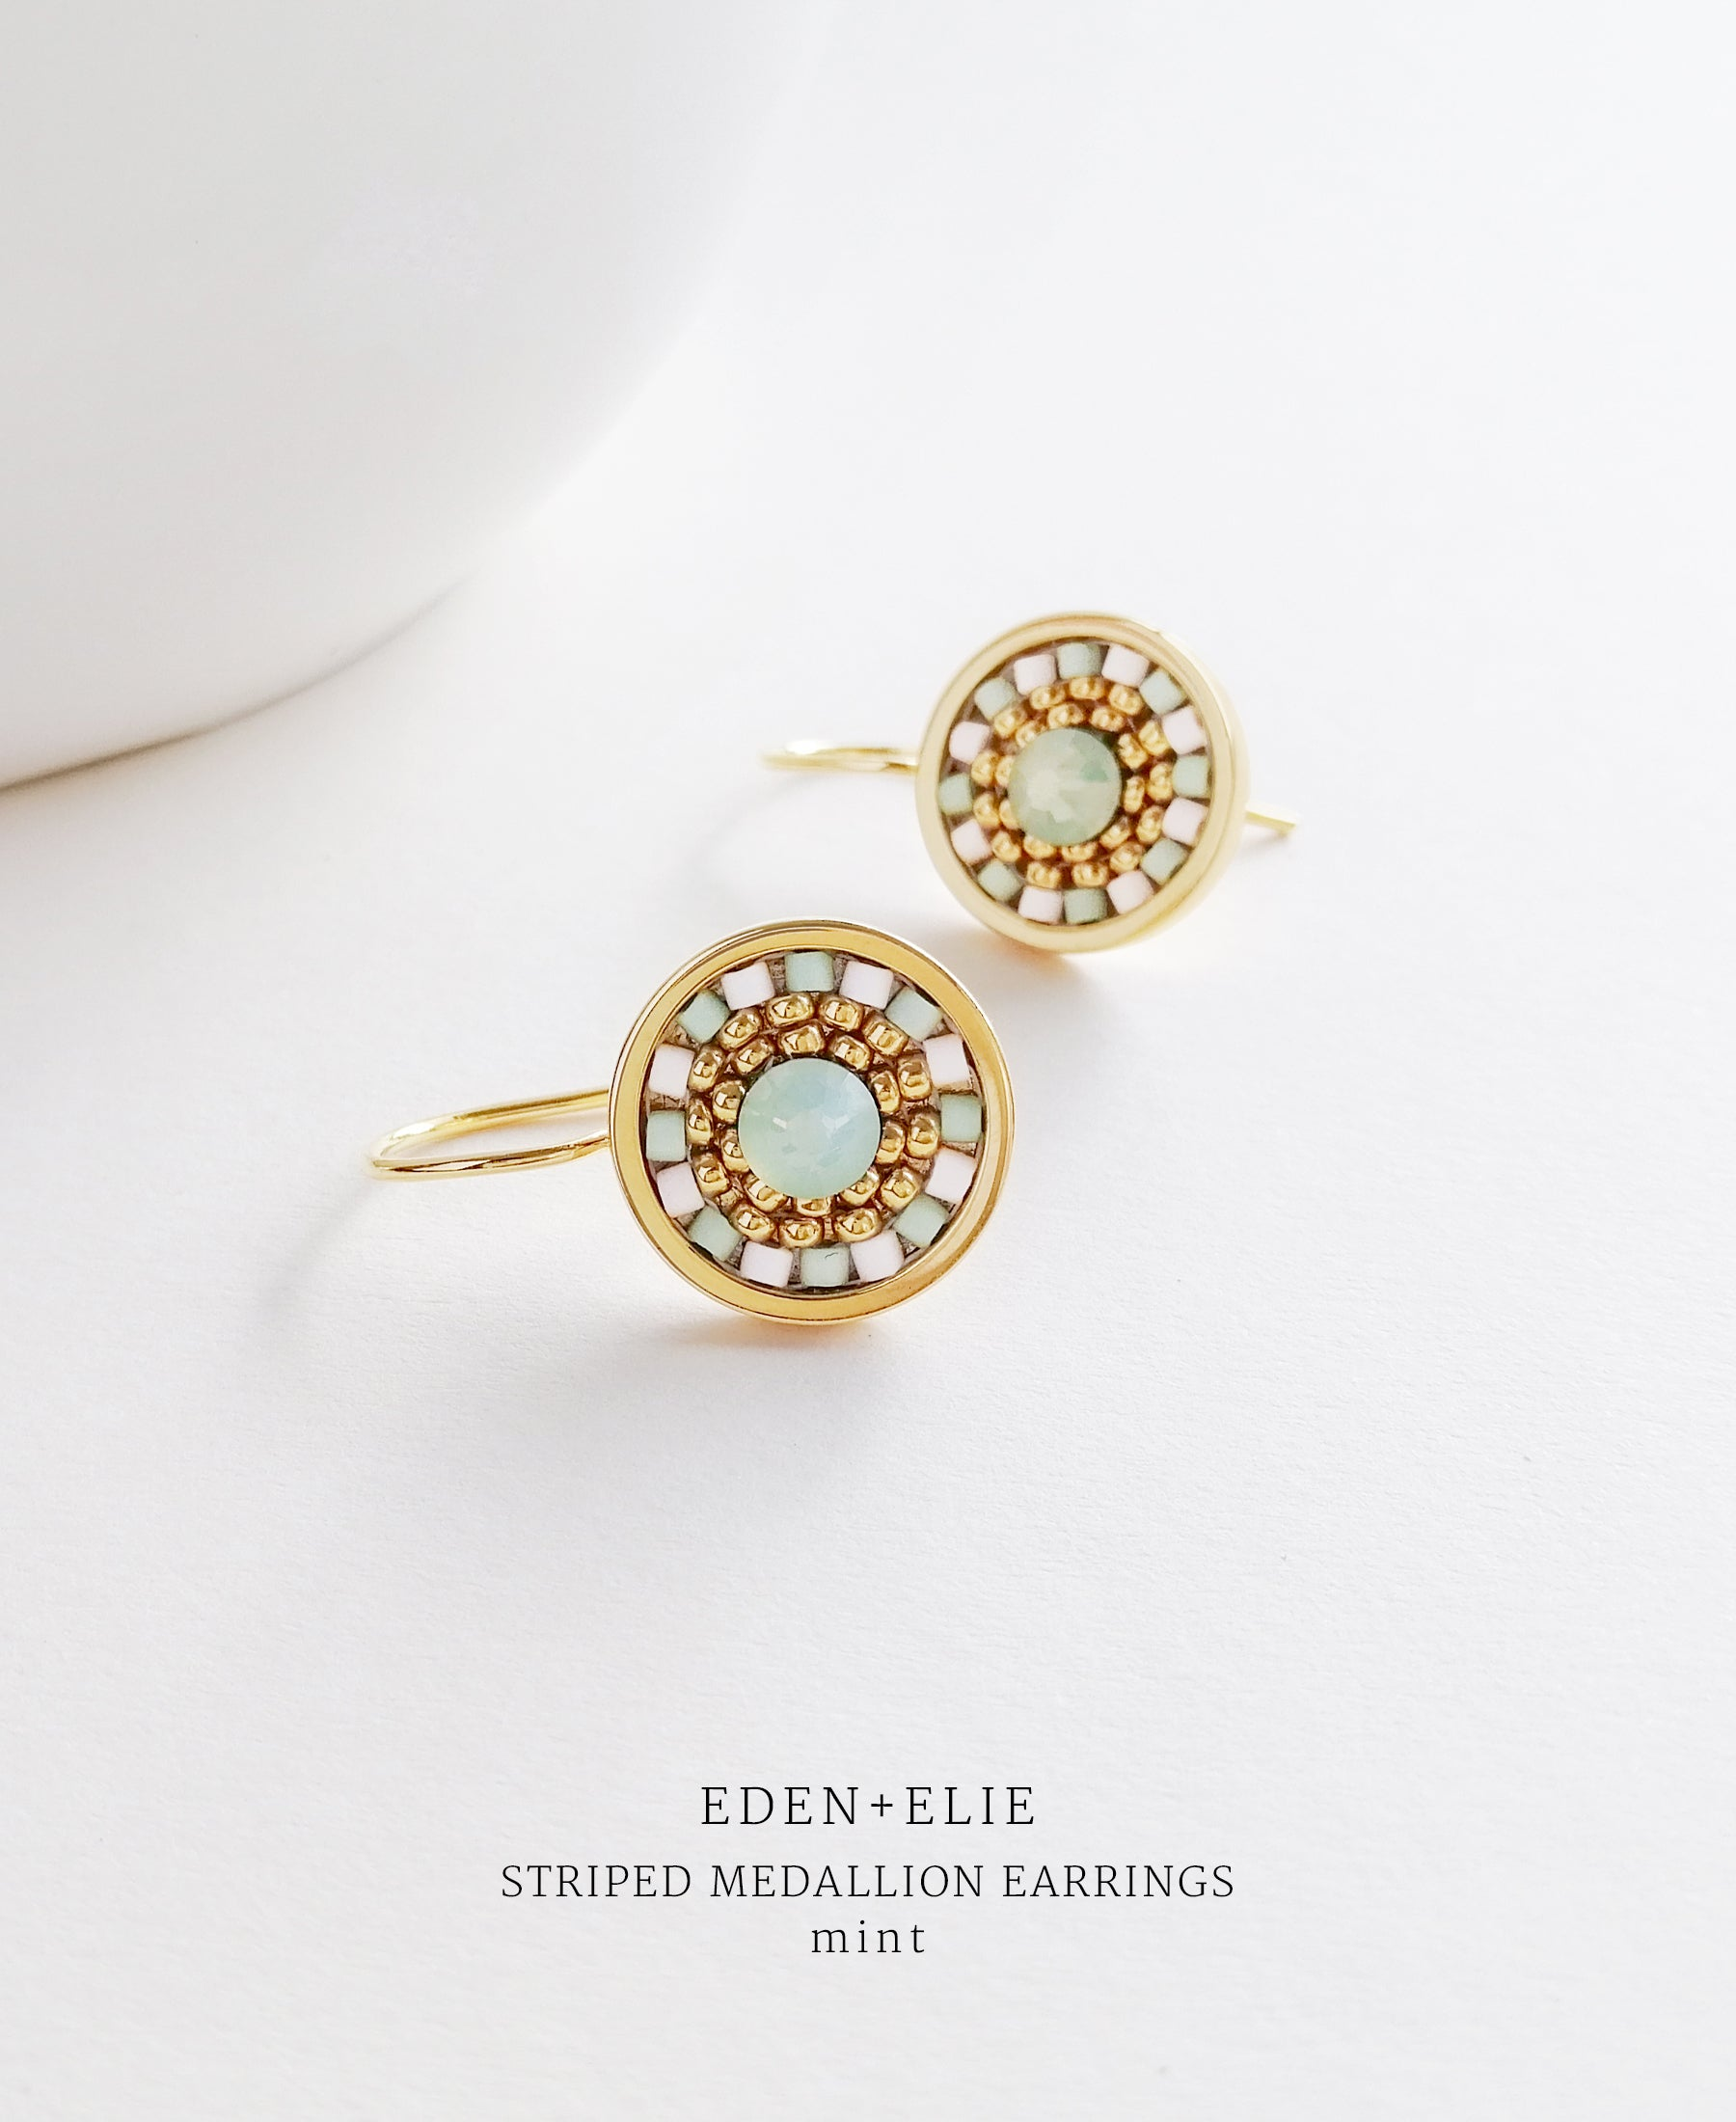 EDEN + ELIE Striped Medallion drop earrings - mint